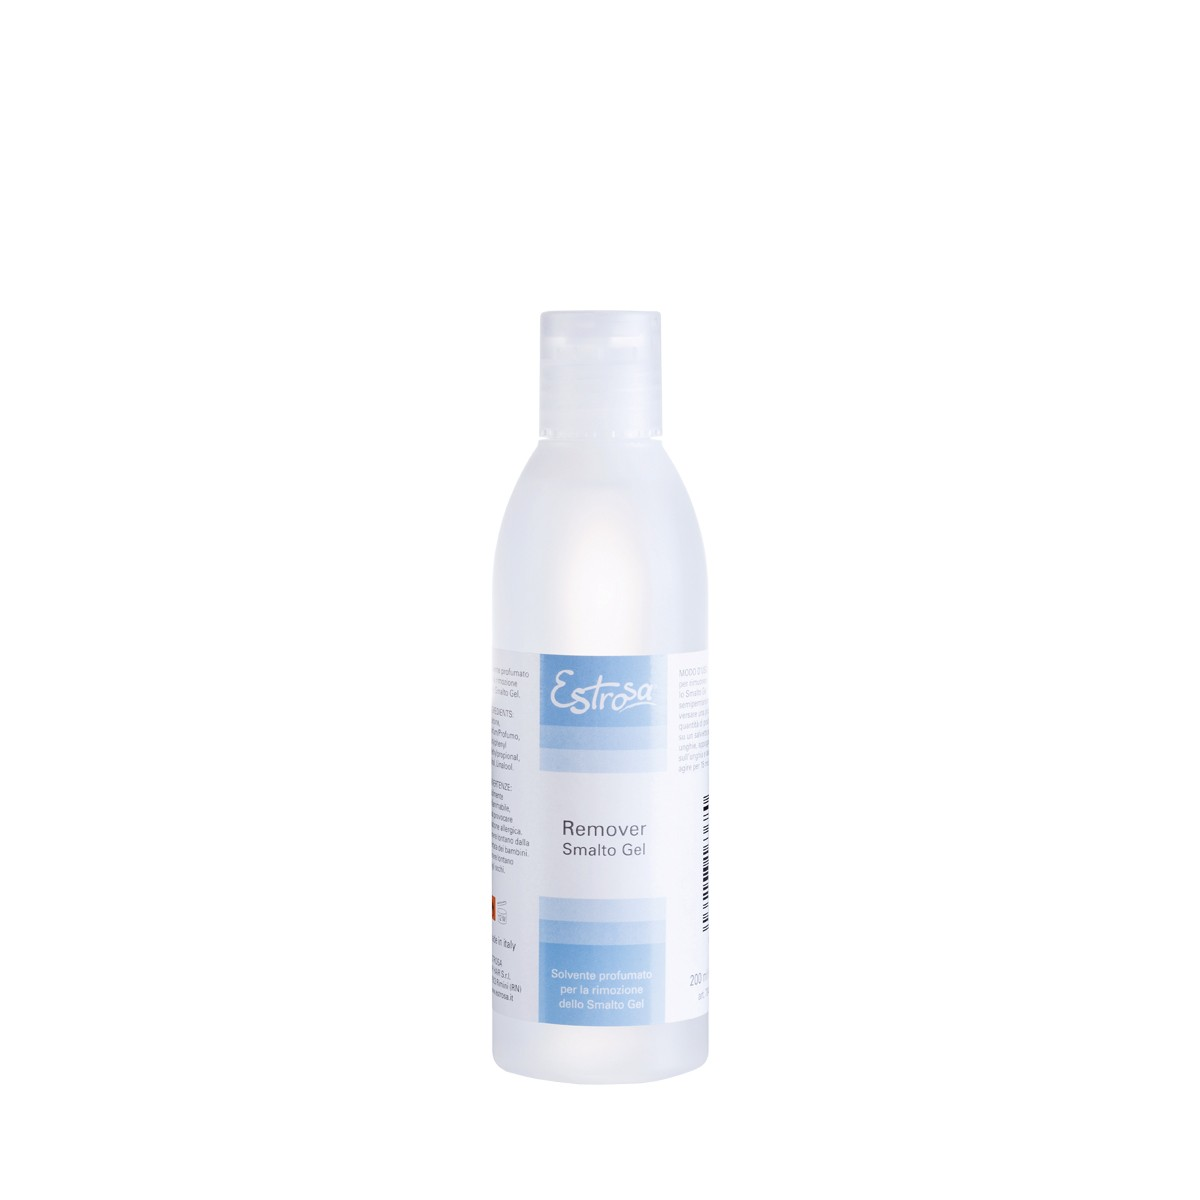 REMOVER SMALTO GEL - 200 ML